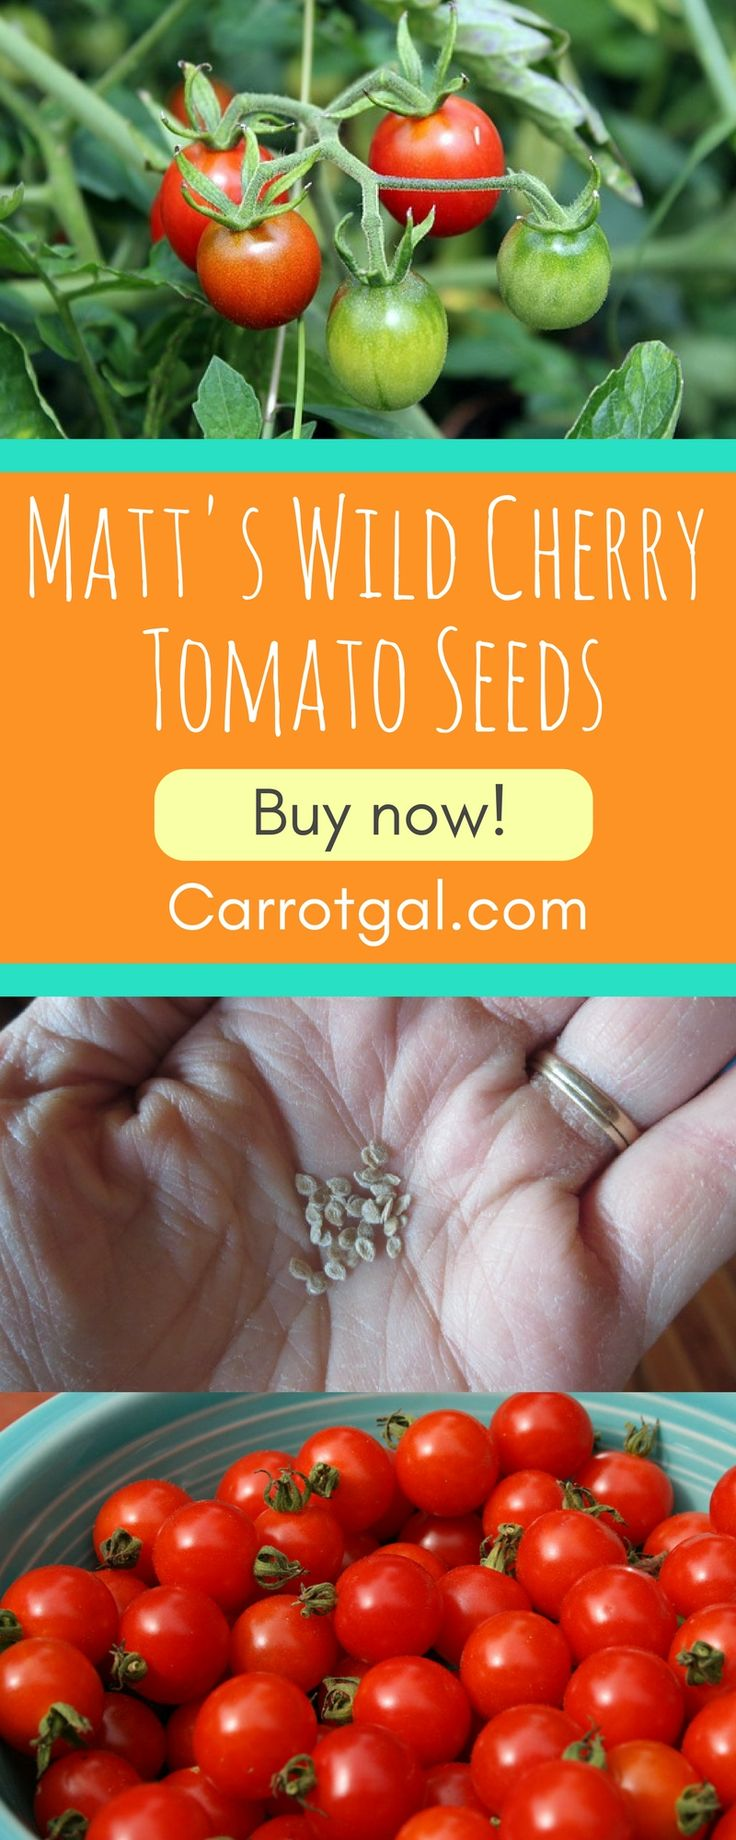 $2.75 per packet - Matt's Wild Cherry Tomato Seeds (25 seeds per packet) - Indeterminate, Heirloom Tomato, Organic Tomatoes, Easy to grow, Currant Tomato, Seed for sale, Rare seeds. Plants bear loads of intensely sweet and flavorful ½ in. deep red cherry tomatoes. Plants are vigorous, disease-resistant, and have a sprawling, wild growth pattern. Self-sows readily.